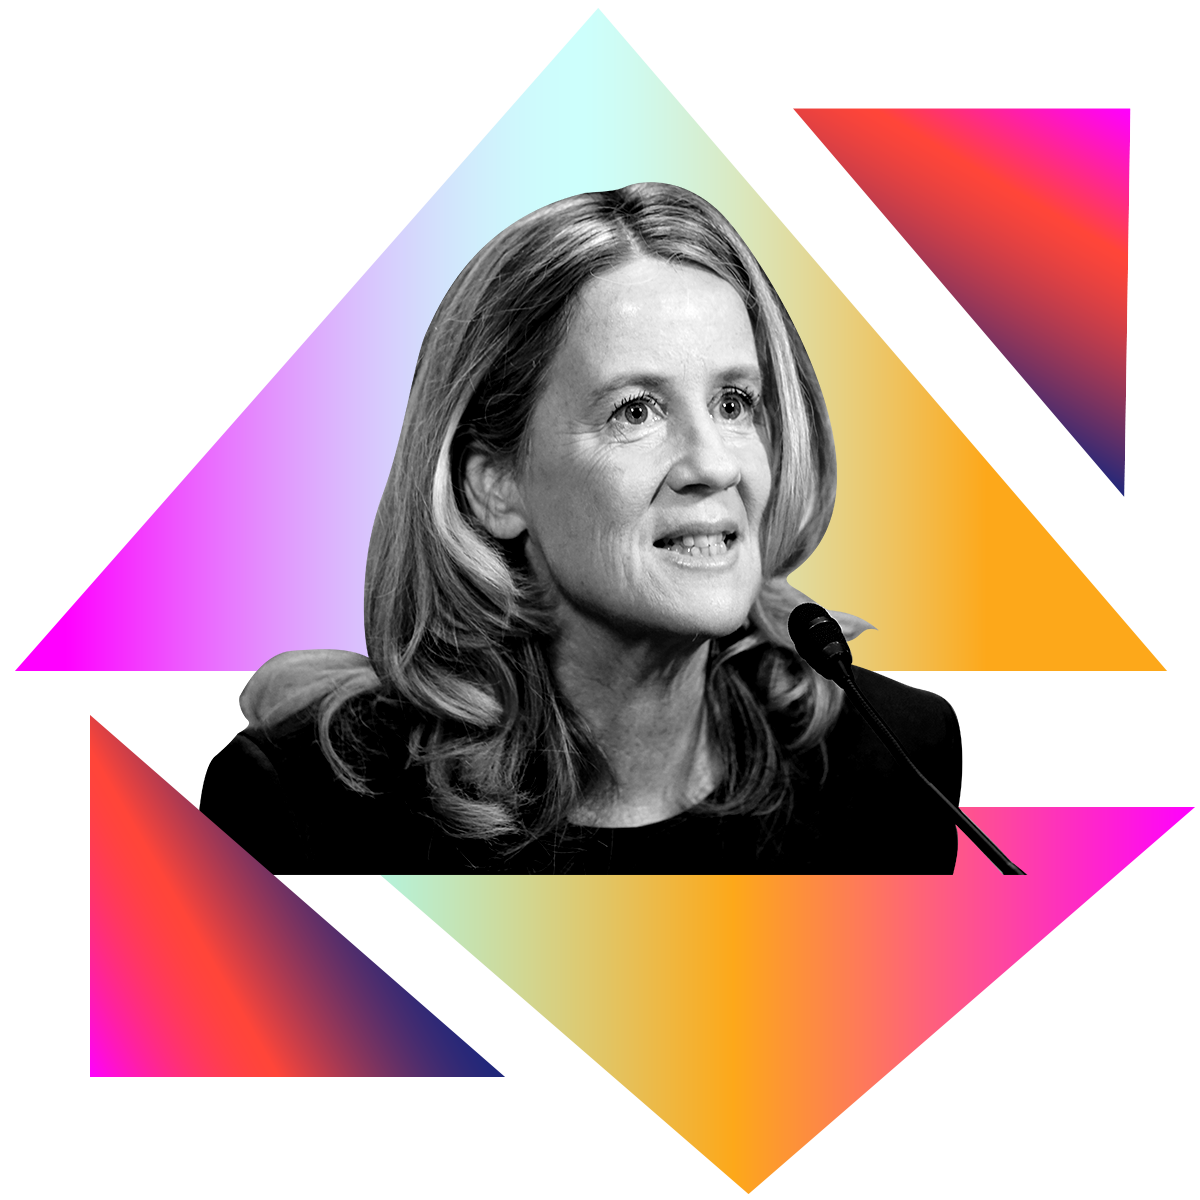 Photo illustration of Dr. Christine Blasey Ford in black and white surrounded by colored gradients